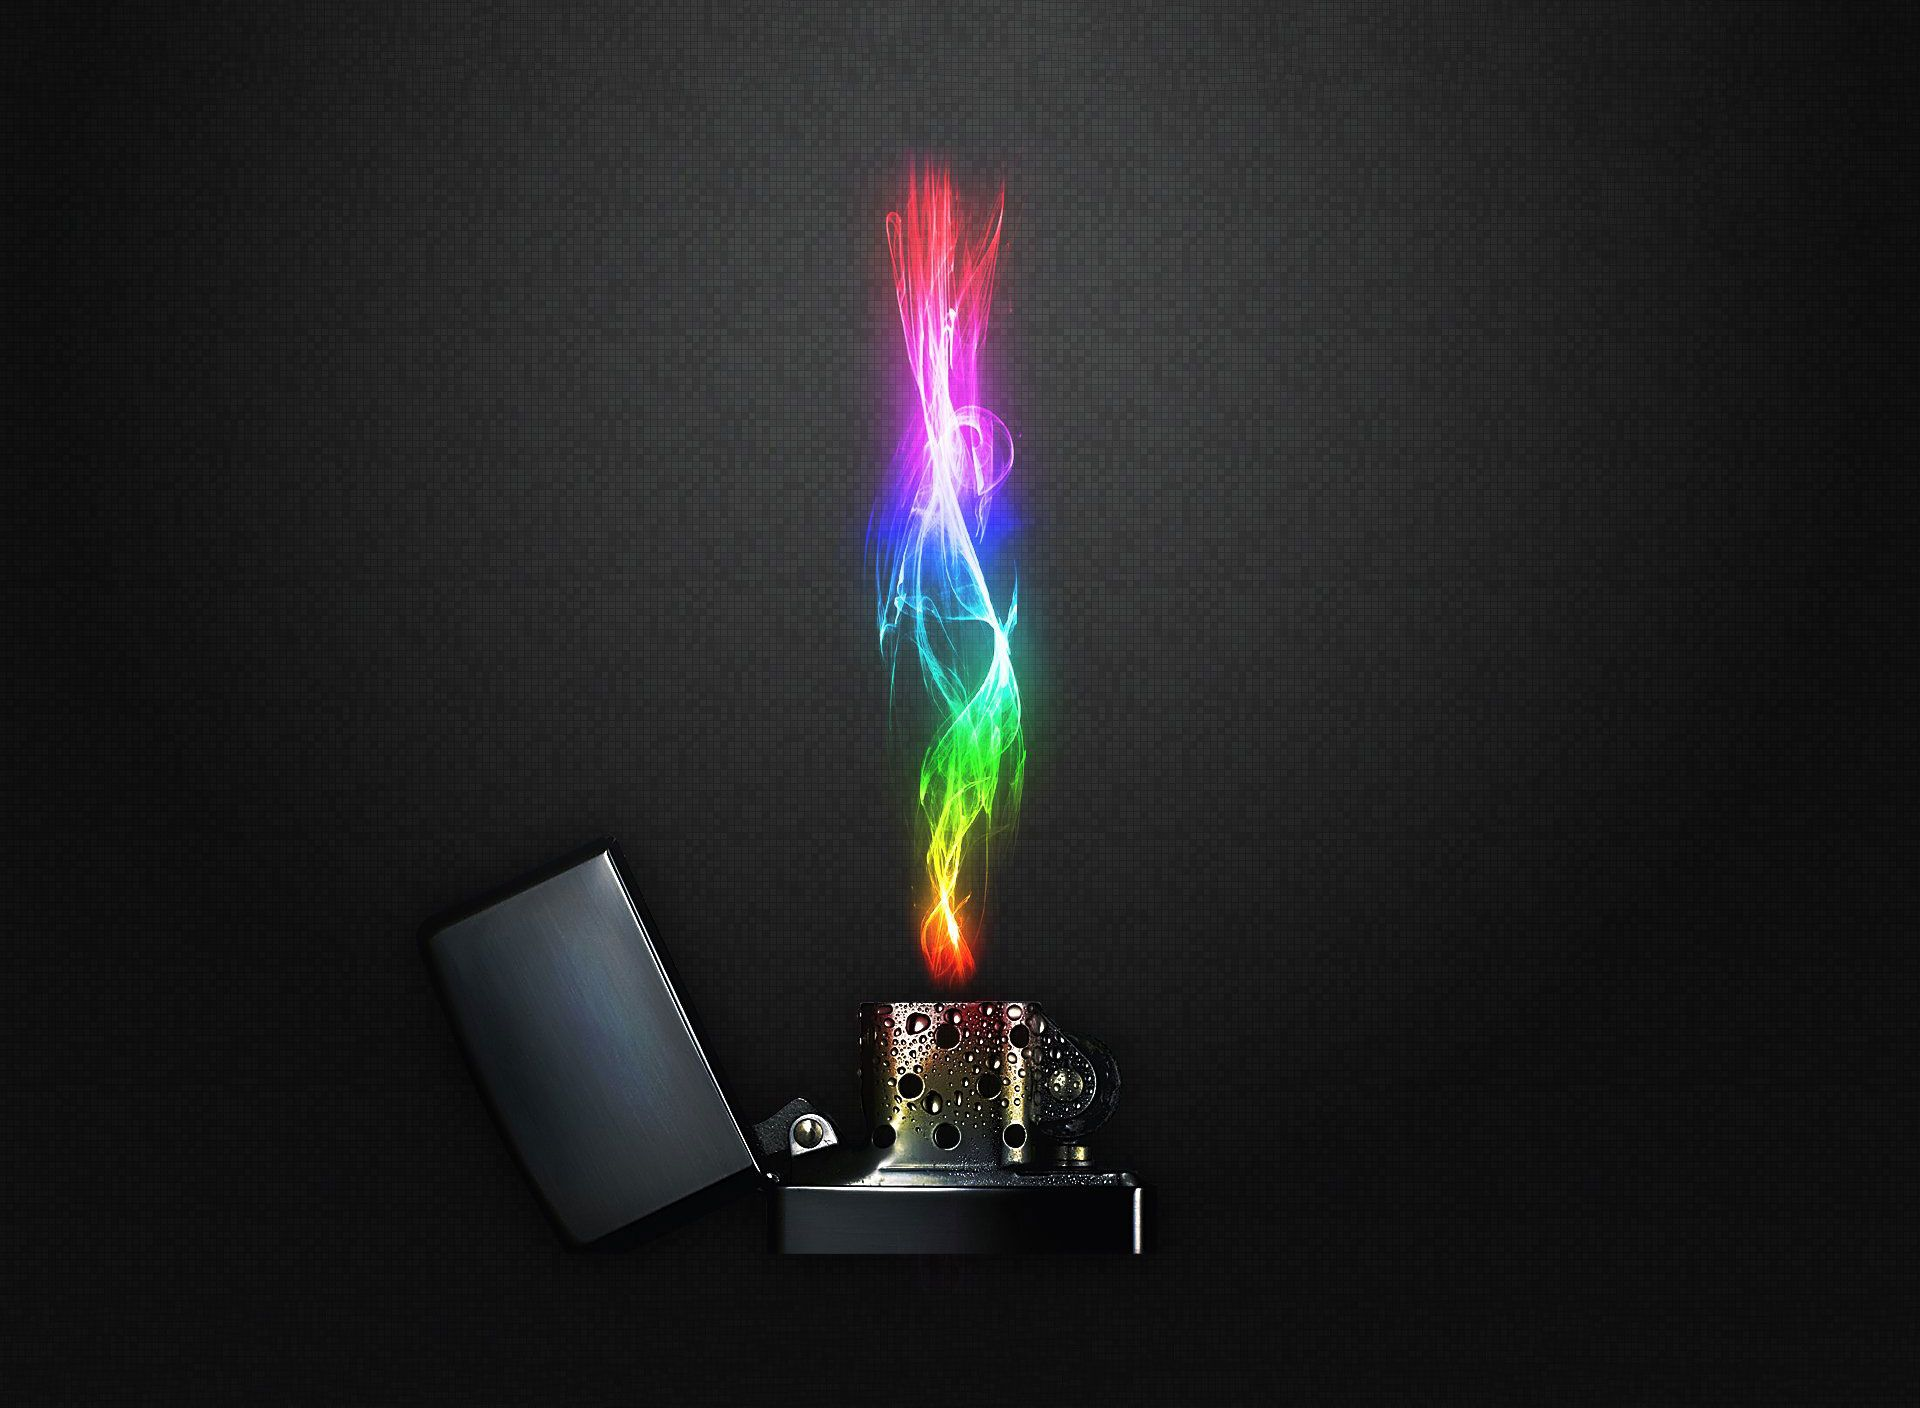 Rainbow Fire Wallpaper Background Other Wallpapers Amazon Kindle Fire Wallpapers Windows Desktop Wallpaper Lit Wallpaper Background Hd Wallpaper